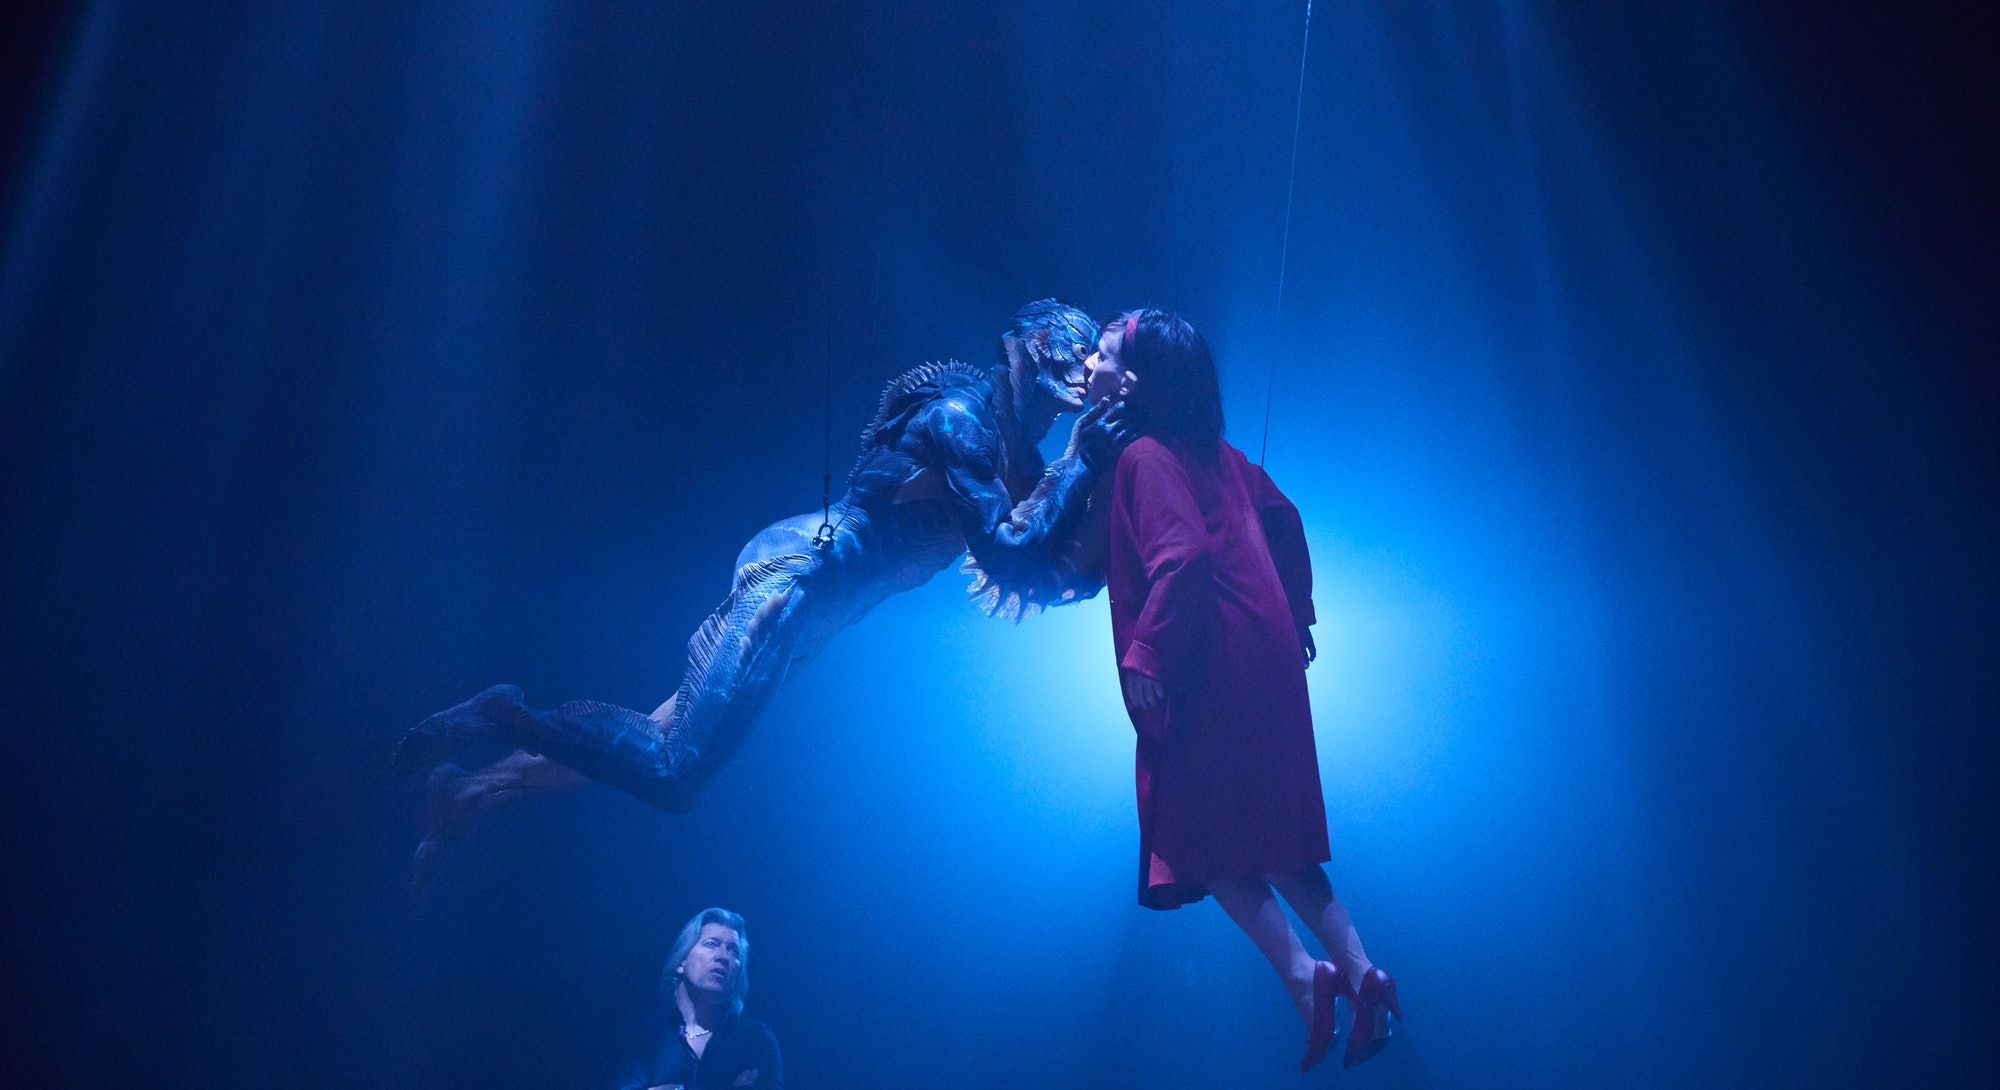 Behind the scenes on 'The Shape of Water' (2017).